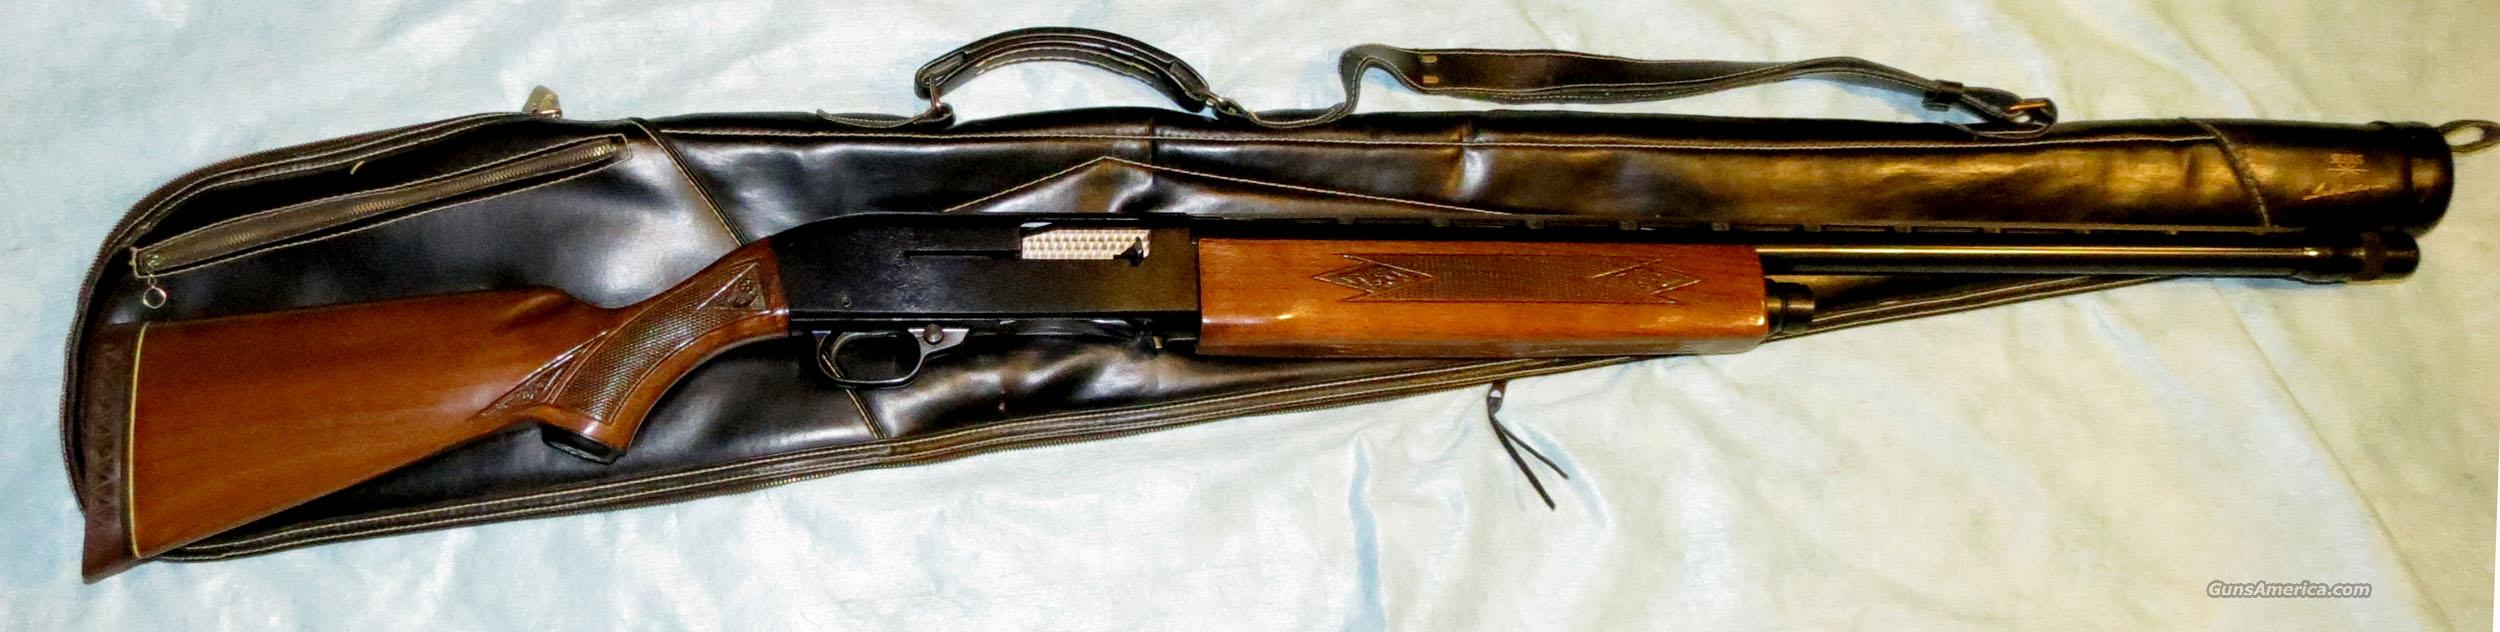 TED WILLIAMS 12 GA. MODEL 300 SHOTGUN - SAME AS WINCHESTER MODEL 1400  Guns > Shotguns > Winchester Shotguns - Modern > Autoloaders > Hunting